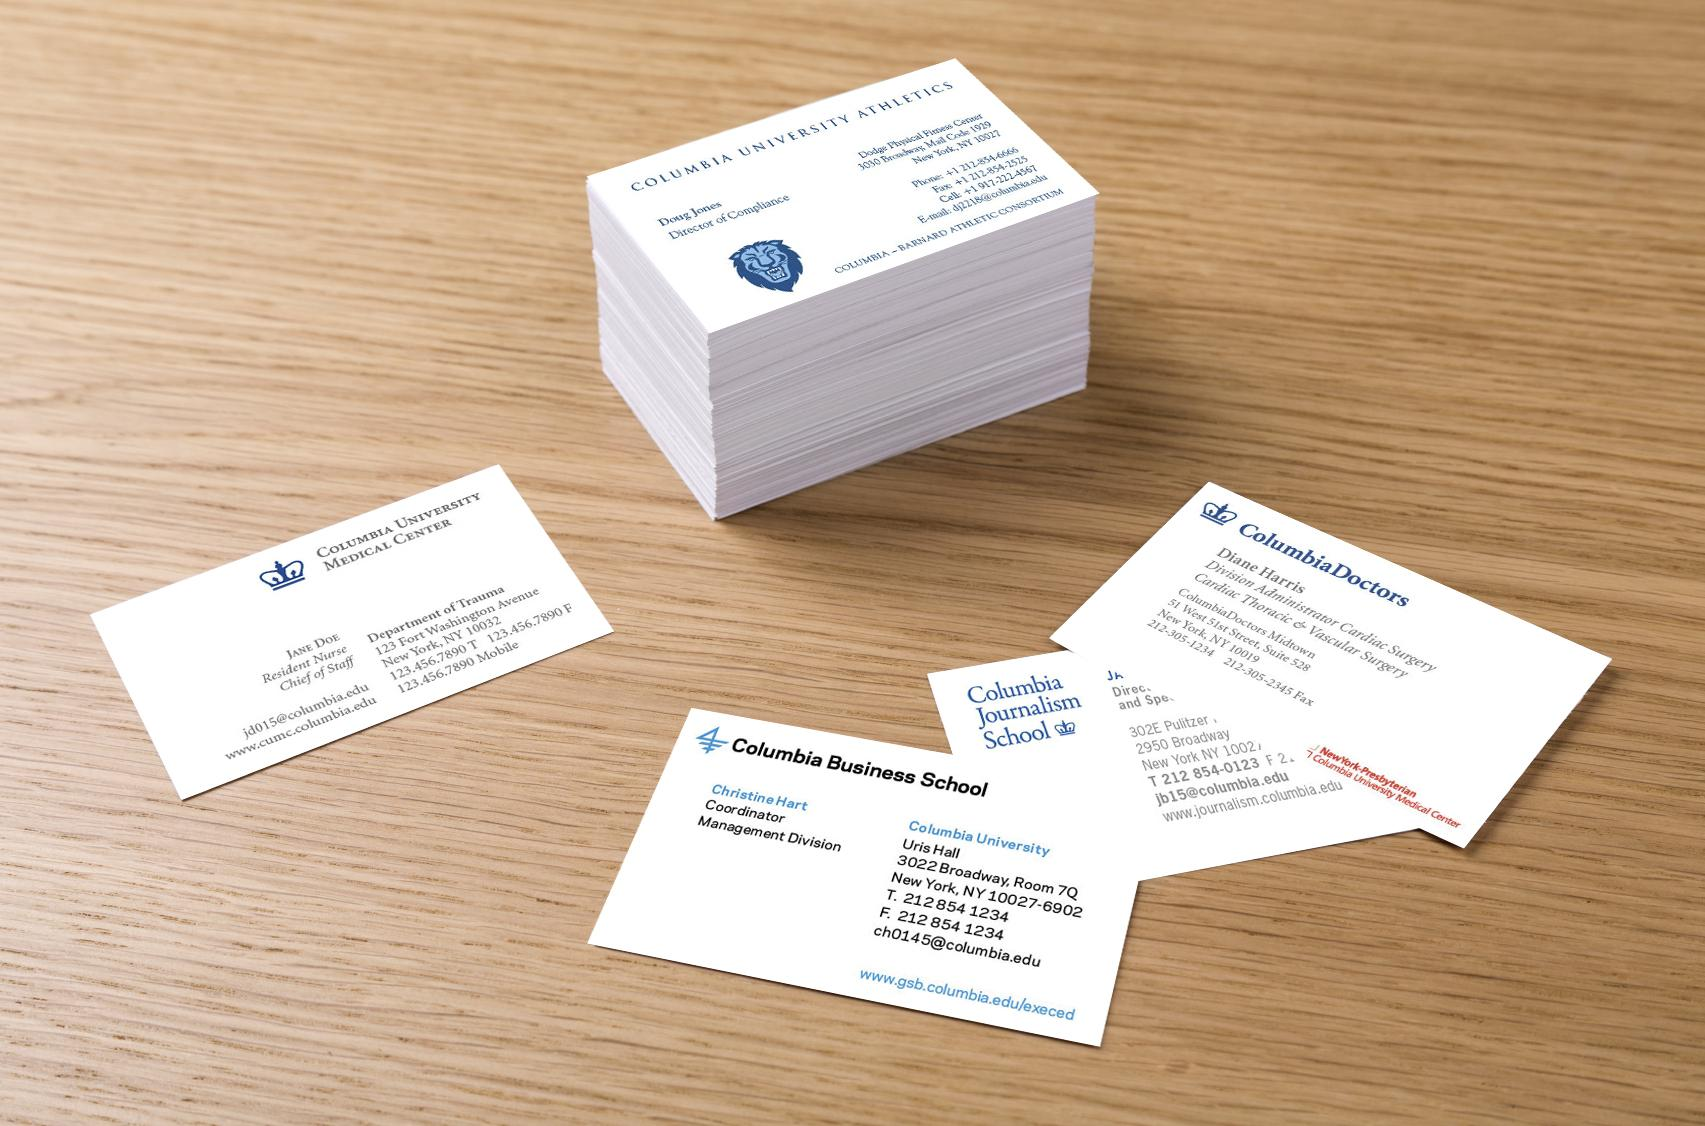 buissness cards